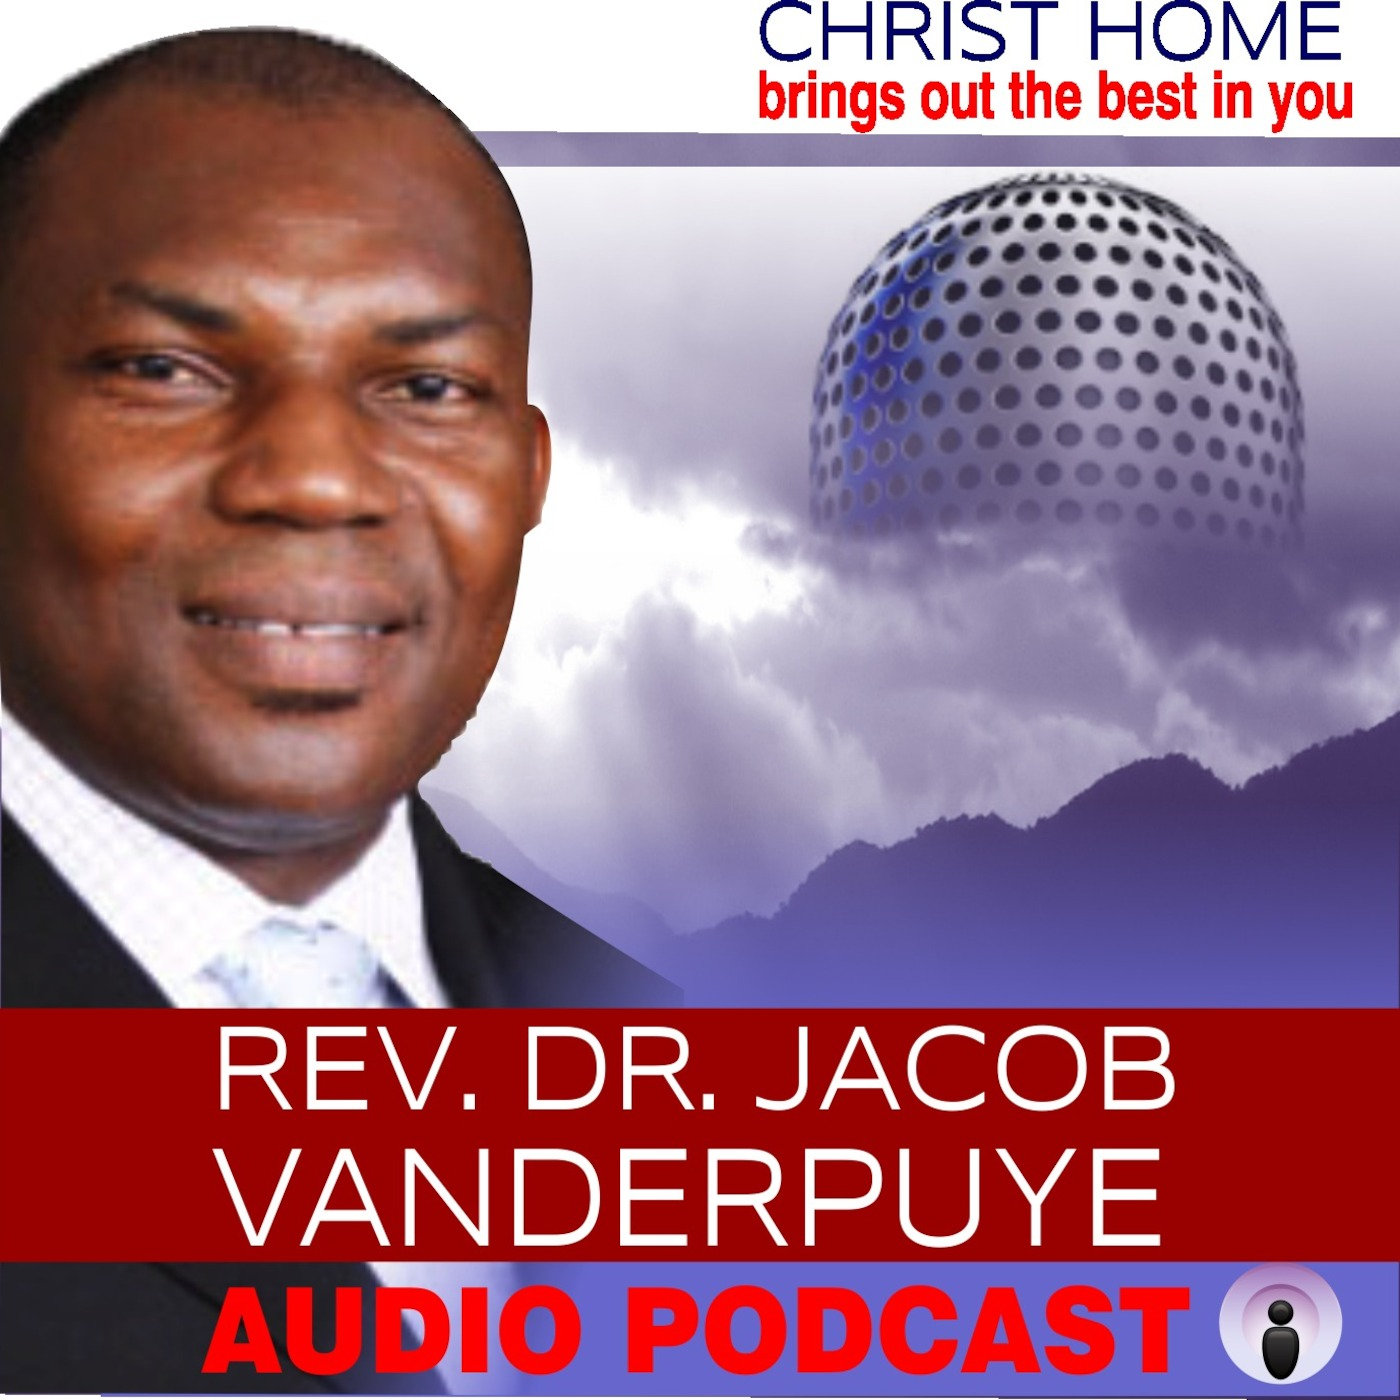 Rev. Dr. Jacob Vanderpuye's Podcast